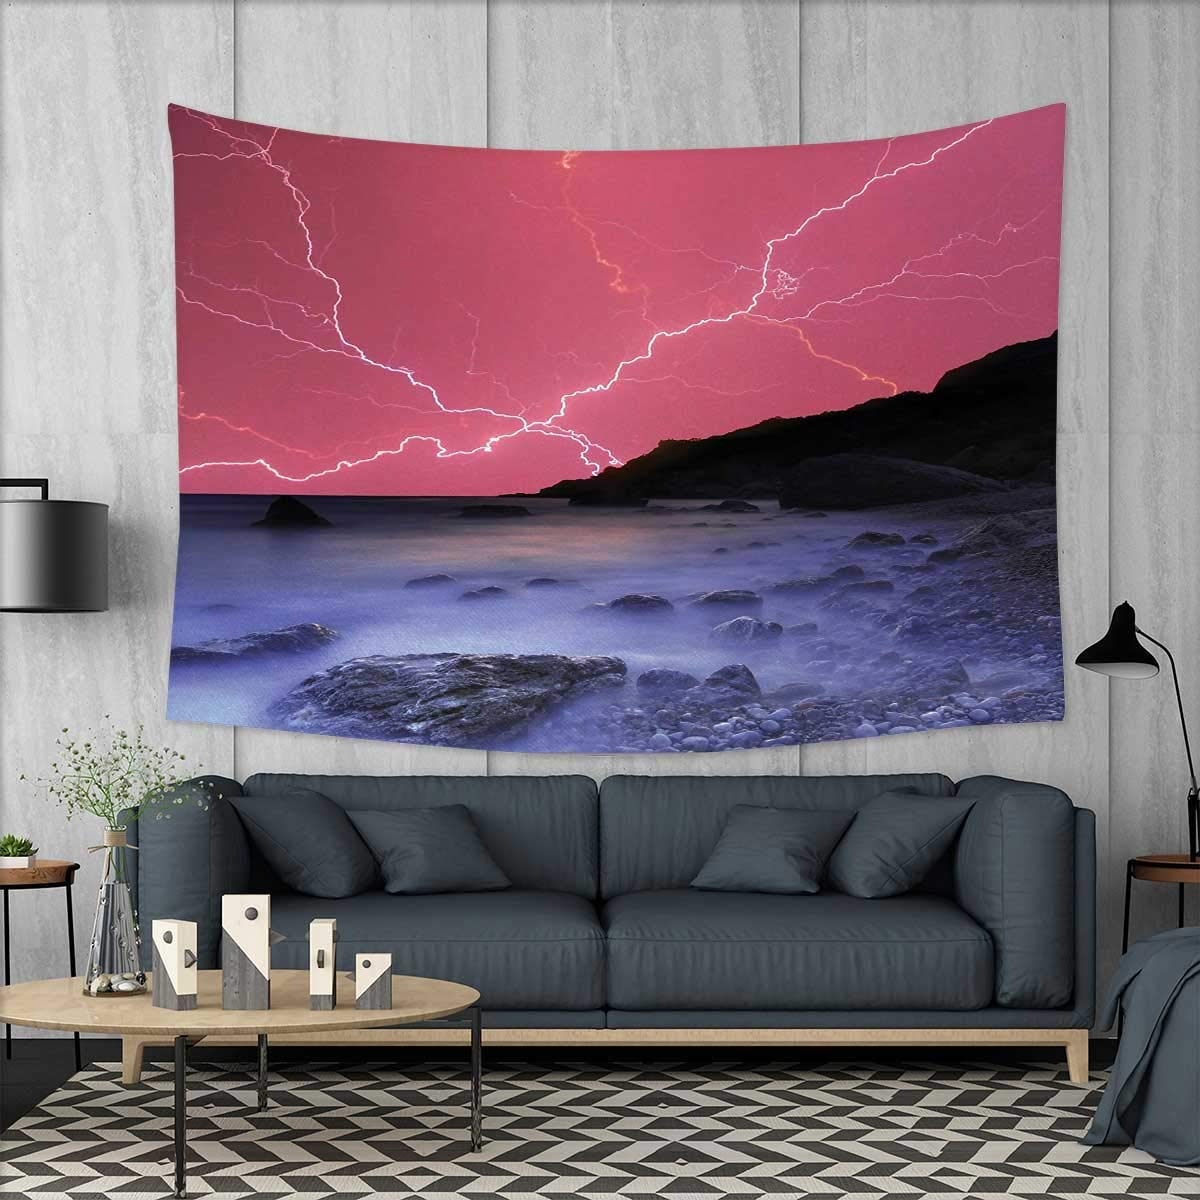 Anniutwo Nature Art Wall Decor Thunderstorm Bolts with Vibrant Colorful Sky Like Solar Phenomenal Nature Picture Tapestry Wall Tapestry W60 x L51 (inch) Pink Grey